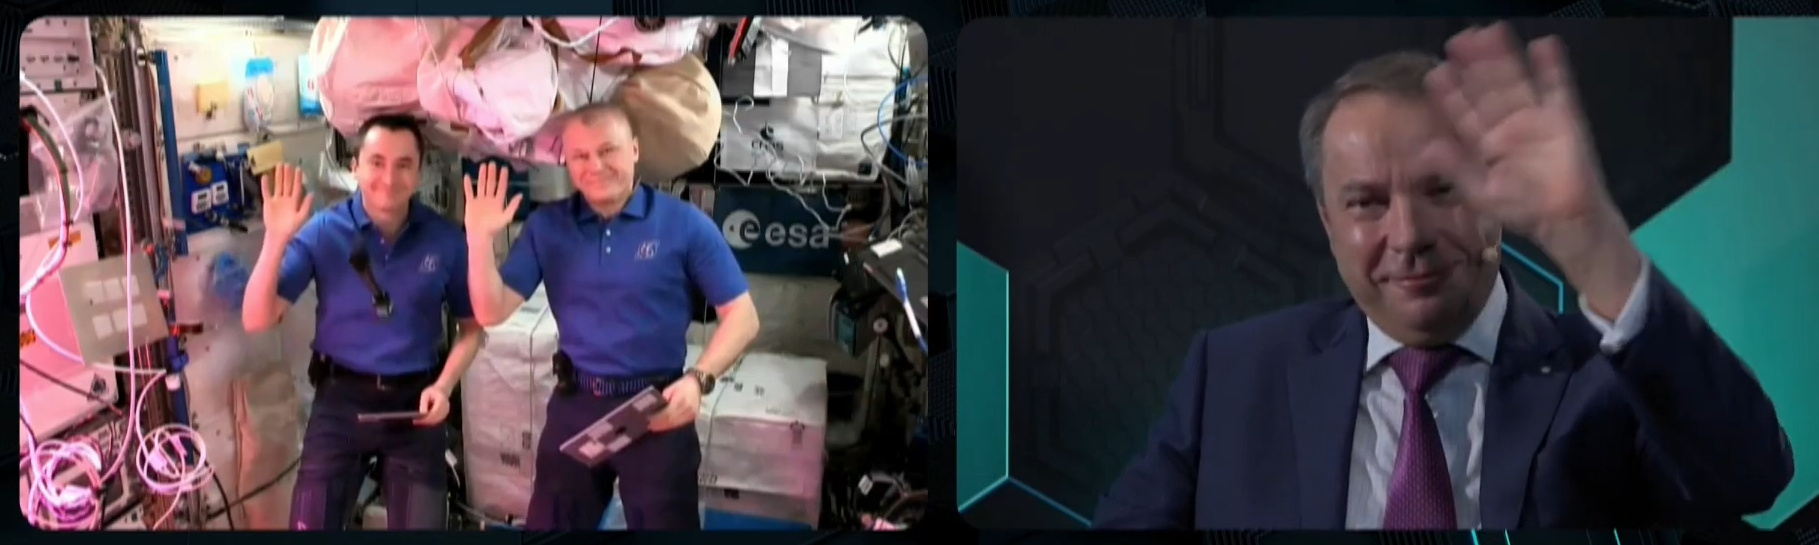 Waving with floating microphone between Pyotr Dubrov (left) with Oleg Novitskiy during ISS interview for Cyber Polygon 2021 (screenshot via YouTube video)